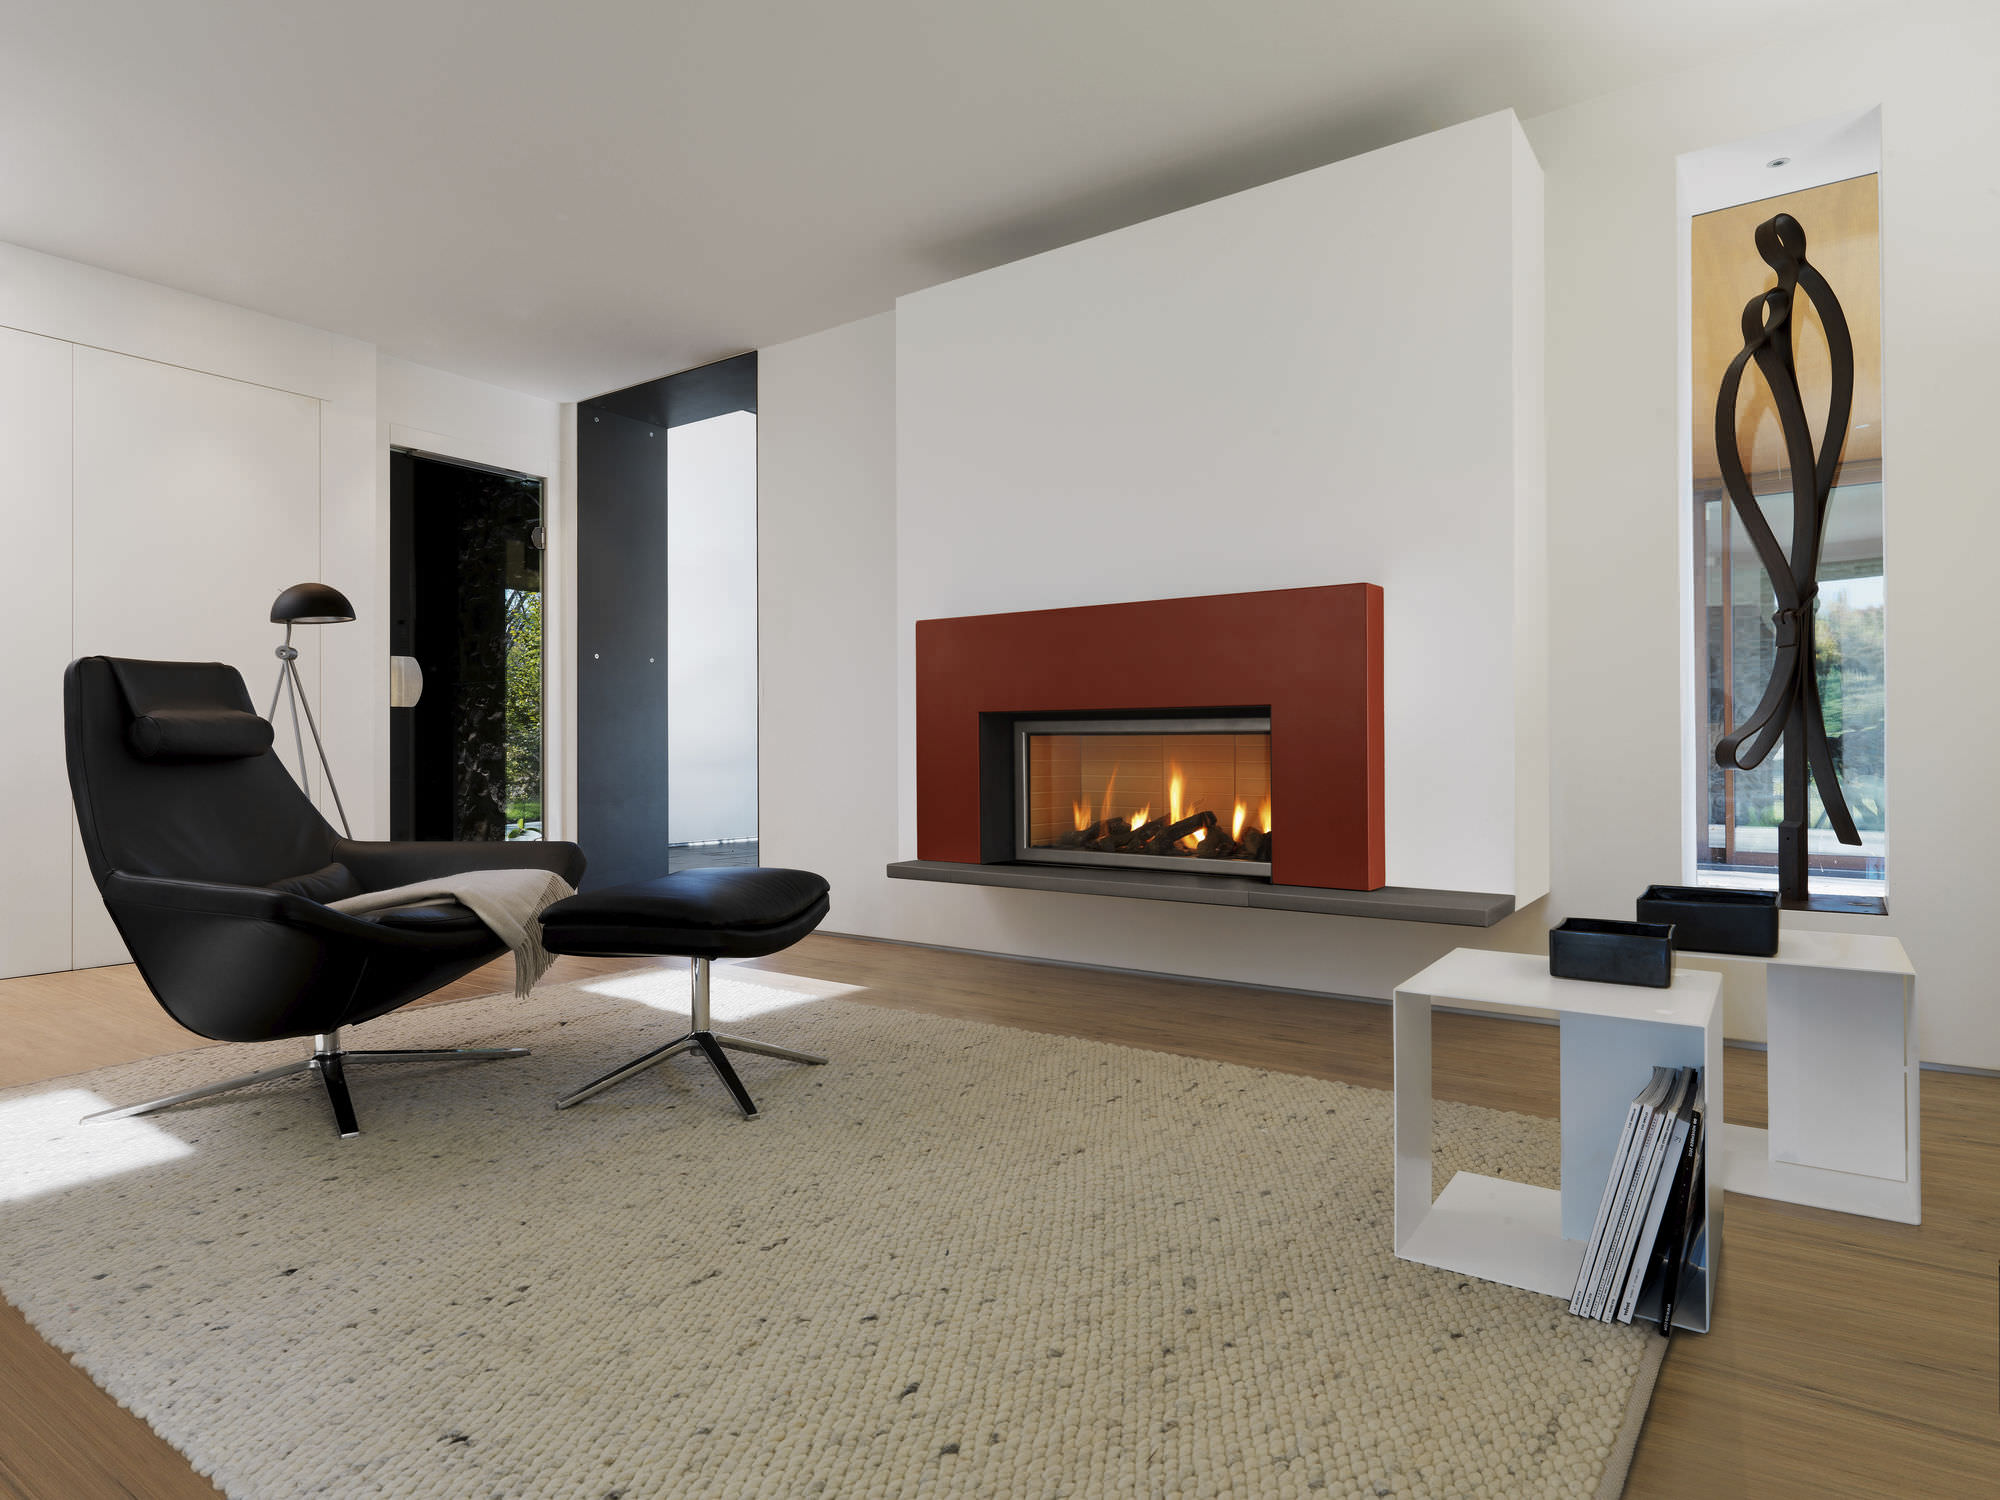 Contemporary Family Room With Cute Fireplace Mantel Ideas also Black Leather Chair